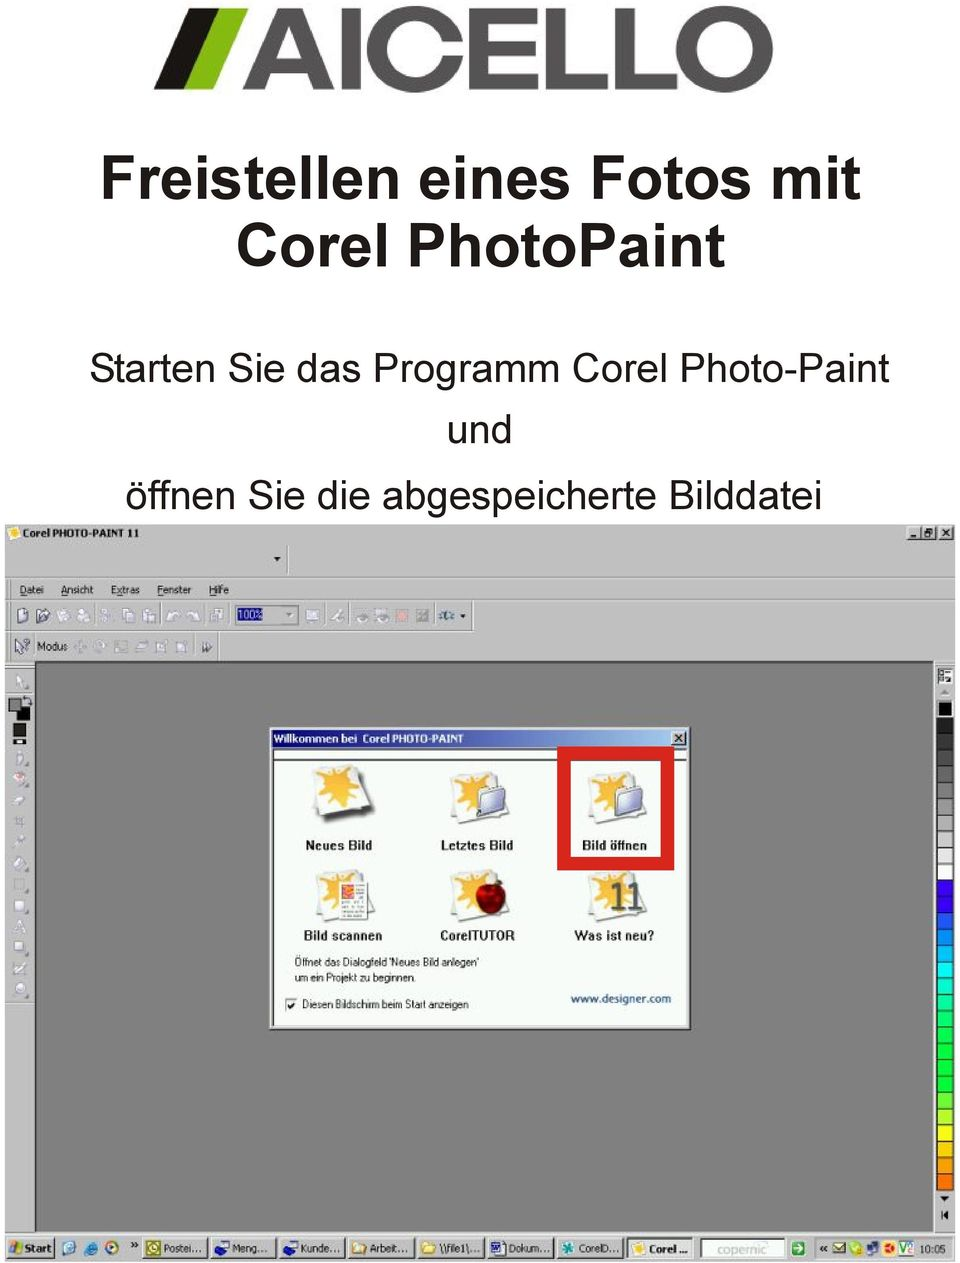 Programm Corel Photo-Paint und